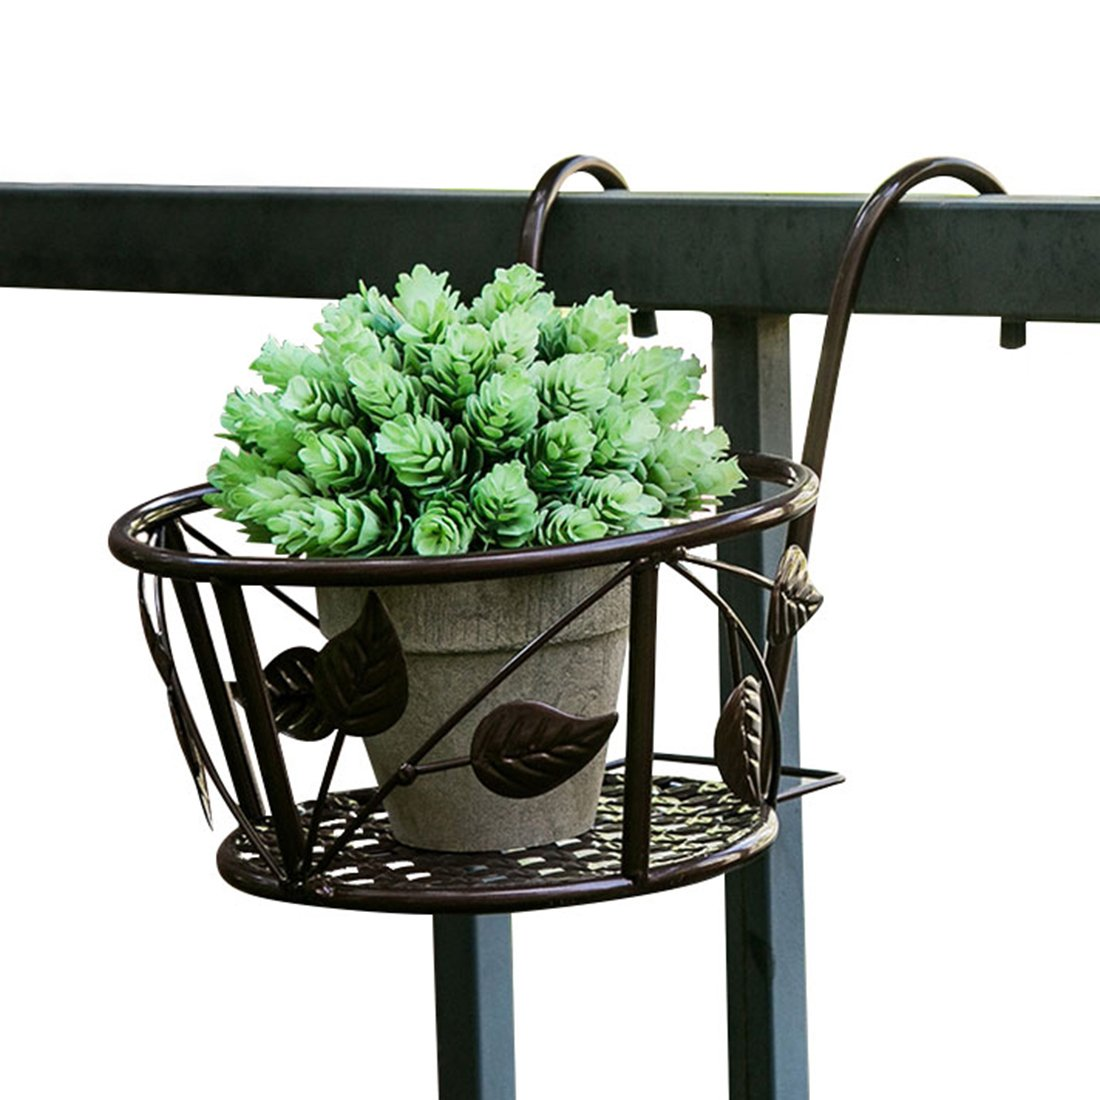 Tosnail 3 Pack Iron Art Hanging Baskets Flower Pot Holder - Great Patio Balcony Porch Fence - Brown by Tosnail (Image #1)